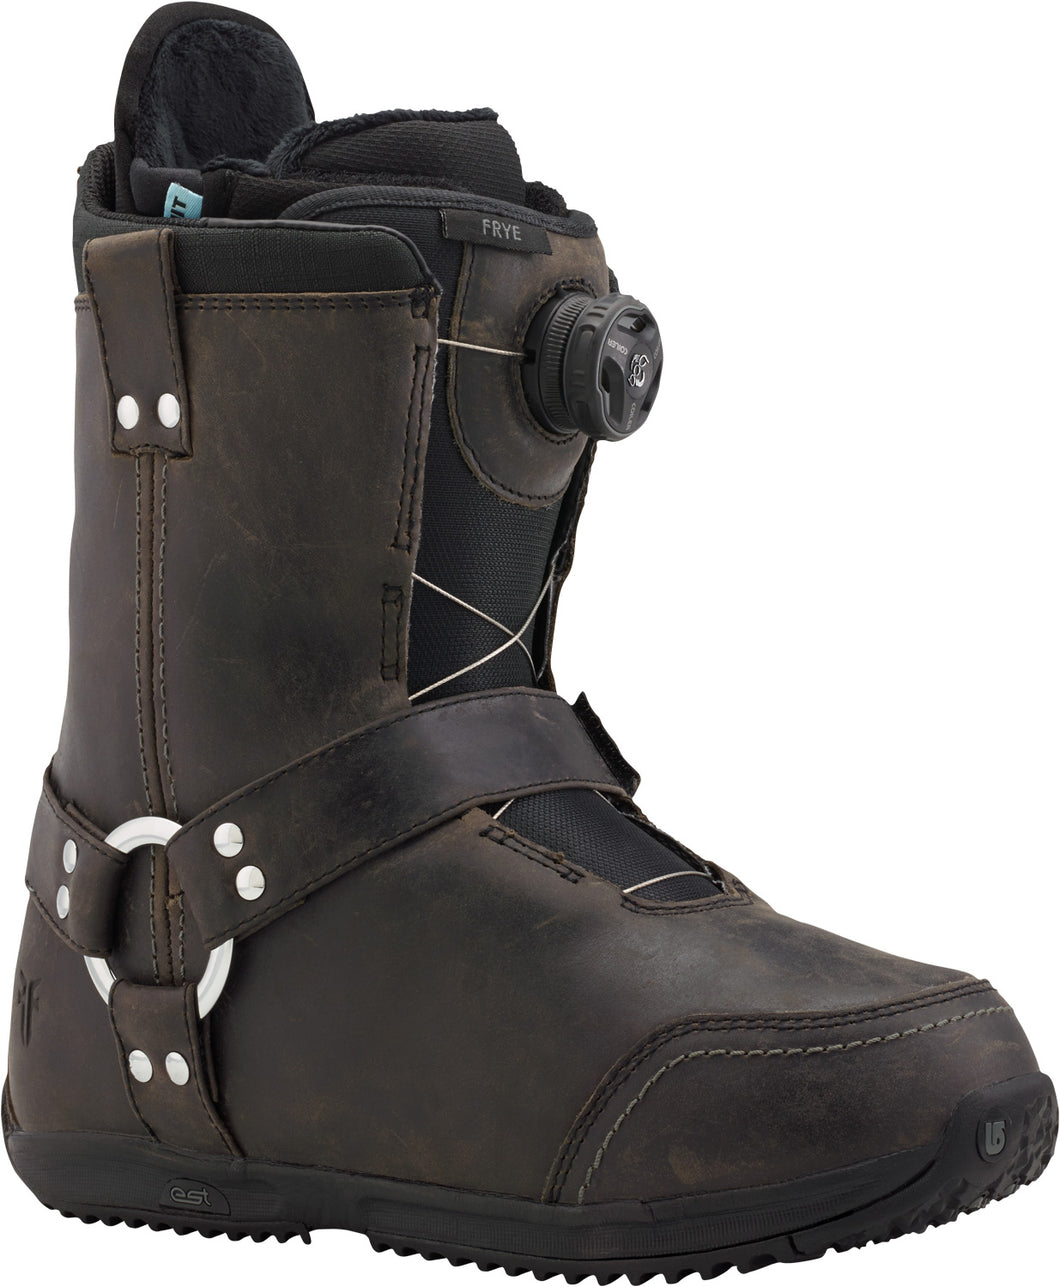 X Frye Women's Harness Snowboard Boot, Brown